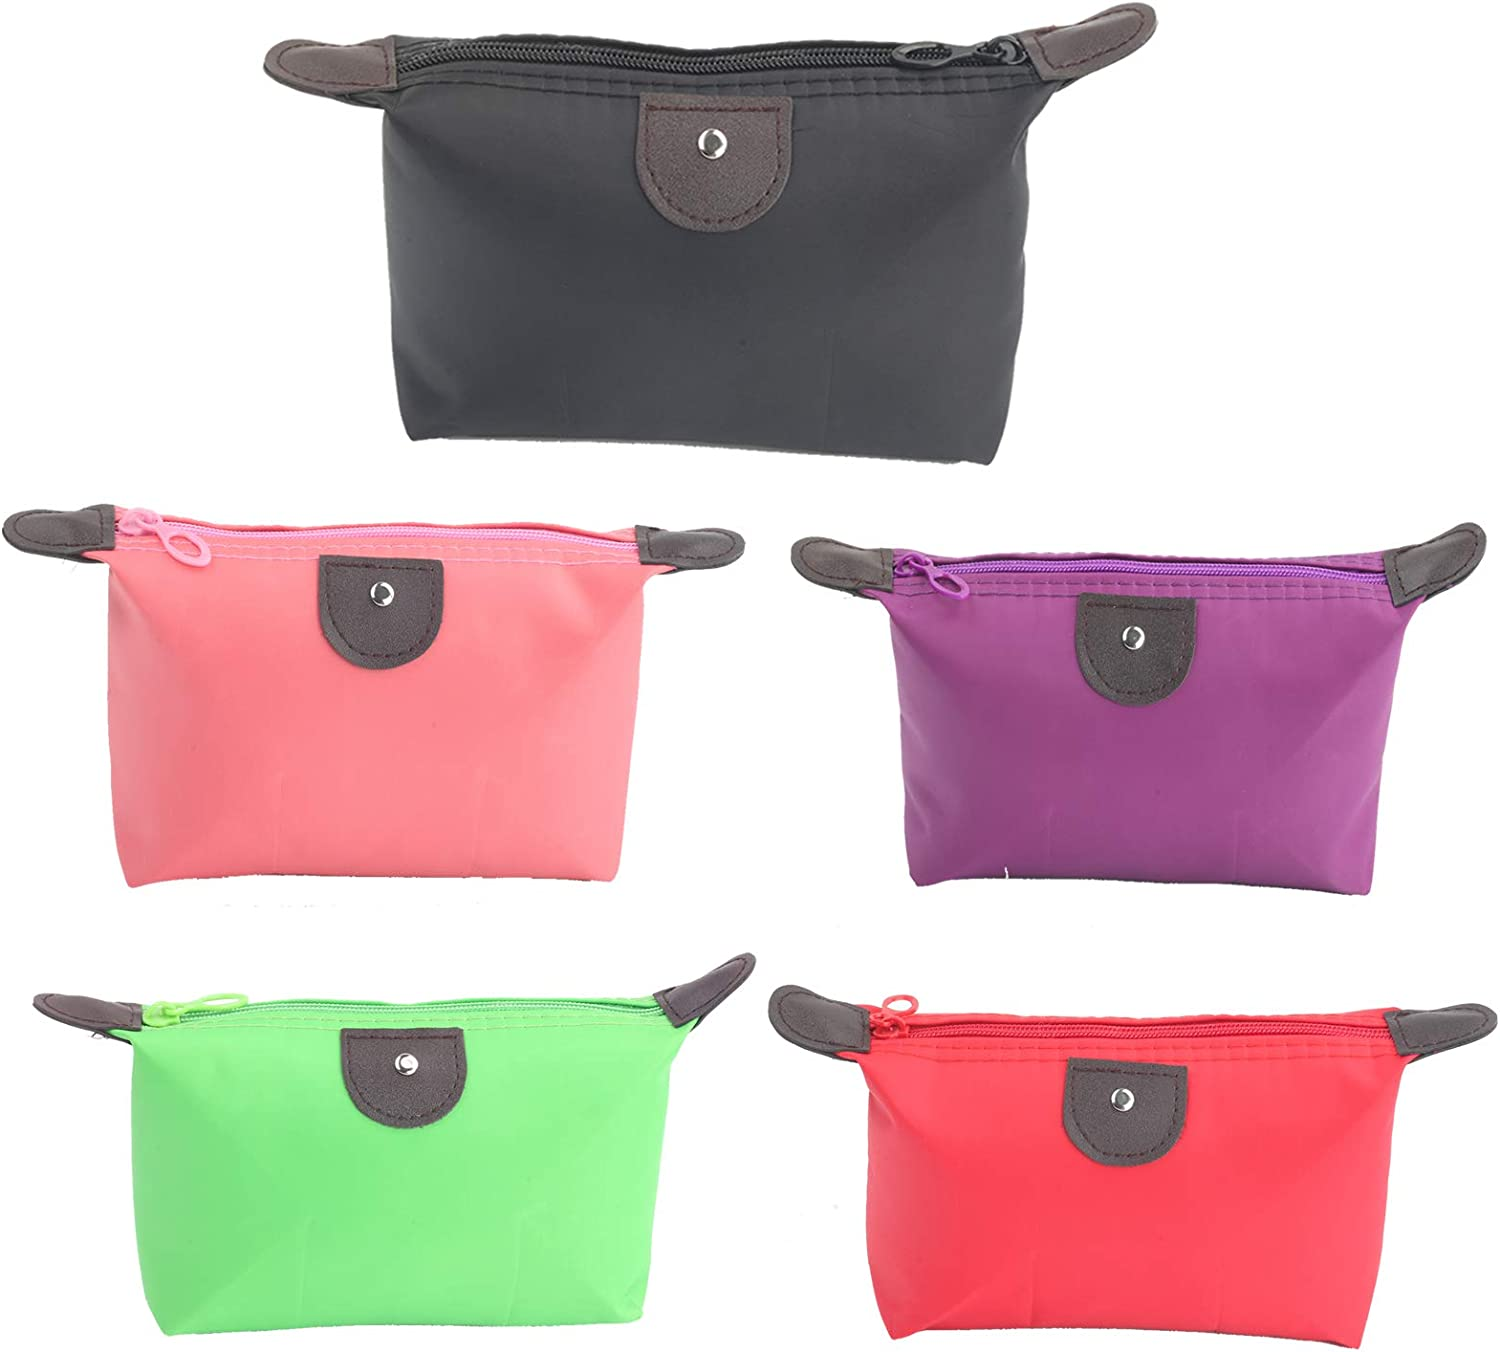 5PCS Cute Small Makeup Bags for Purse, Waterproof Mini Zipper Cosmetic Bags, Luggage Accessories for Travel (5PCS Style 1)